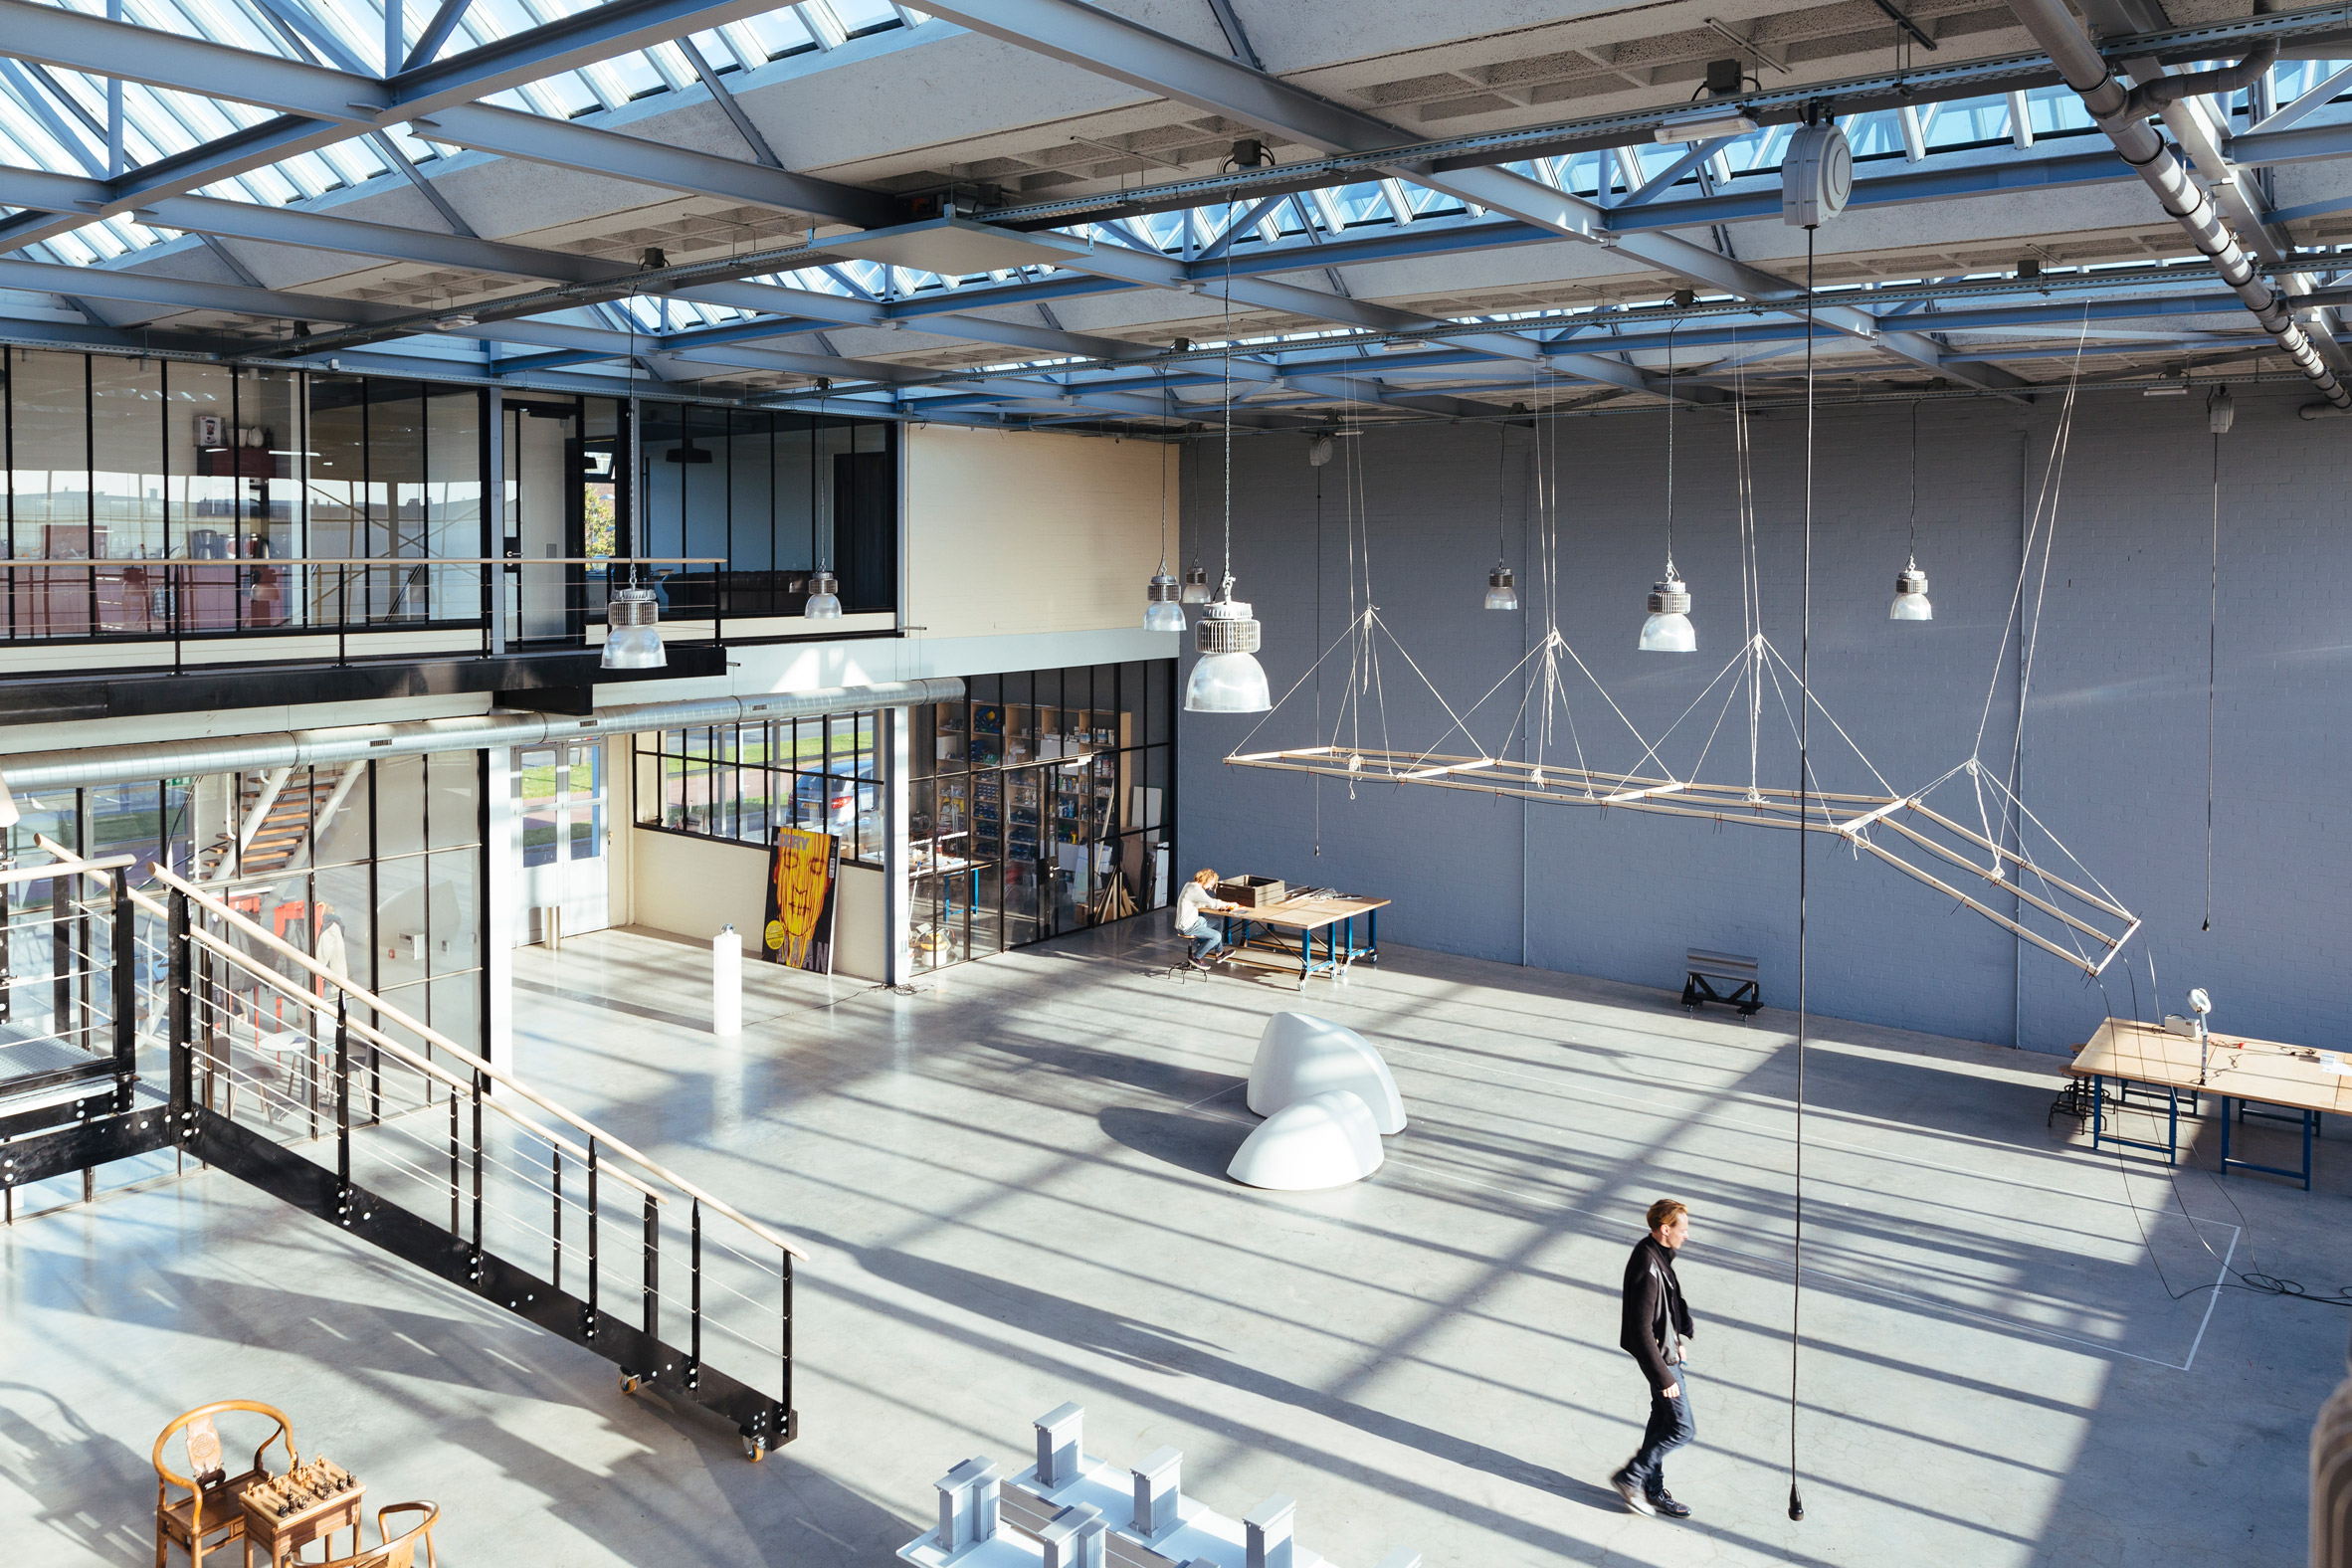 """Studio Roosegaarde converts Rotterdam glass factory into """"dream lab of the 21st century"""""""